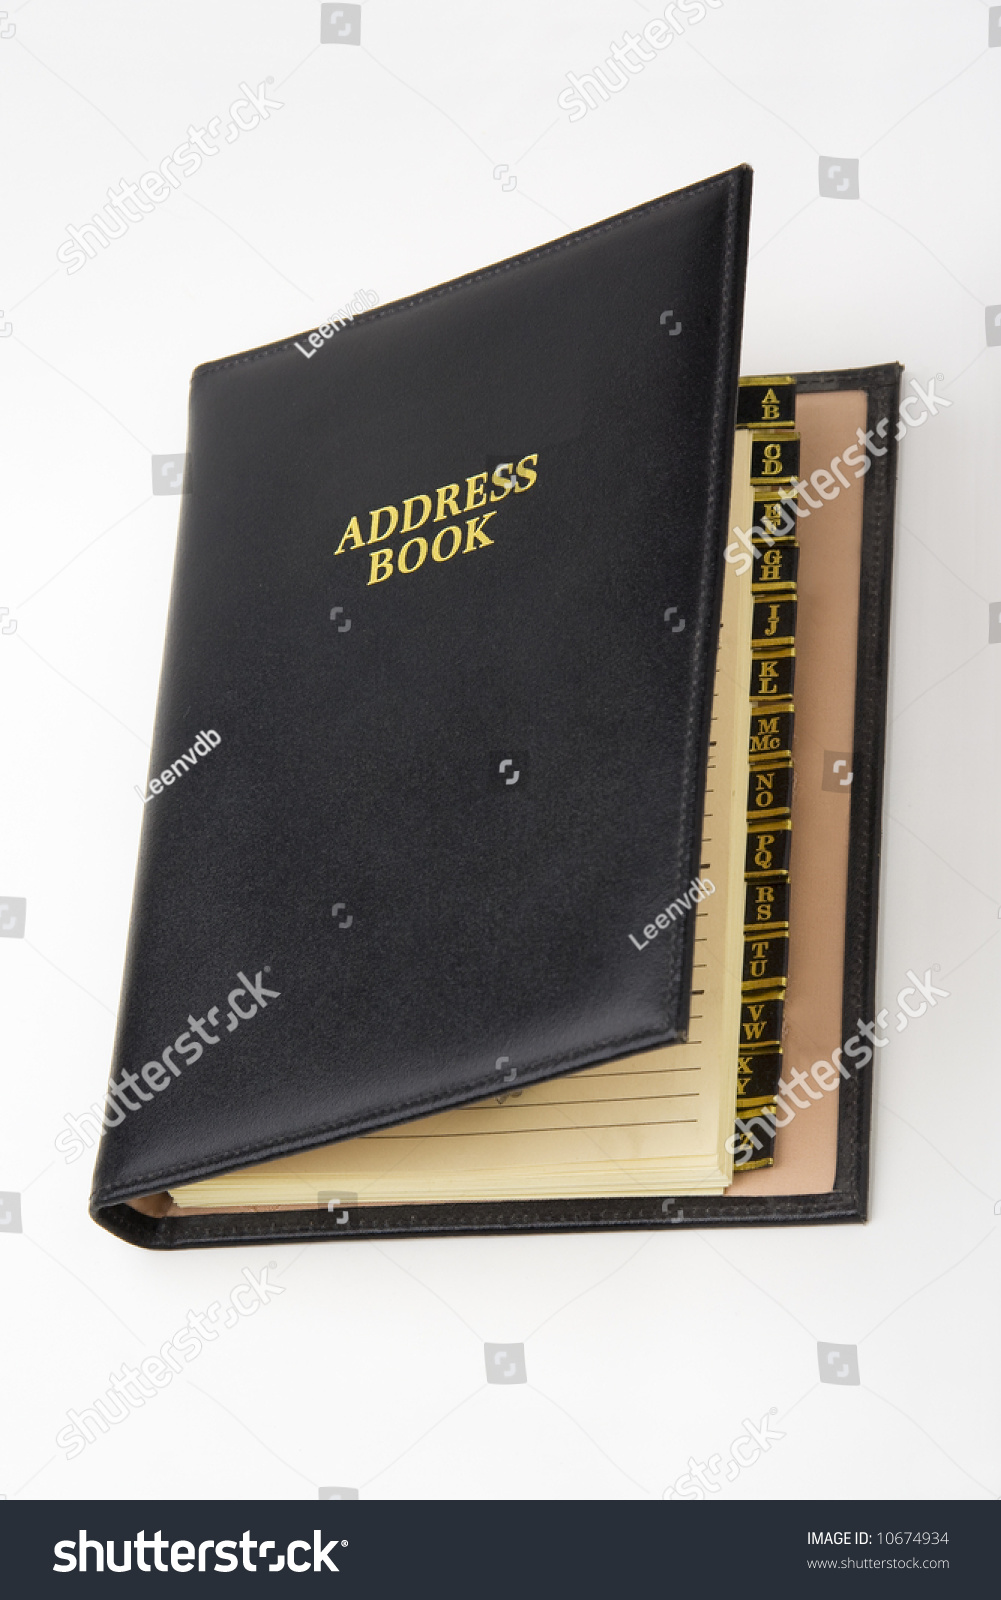 Black Leather Address Book, Alphabetical Tabs Visible